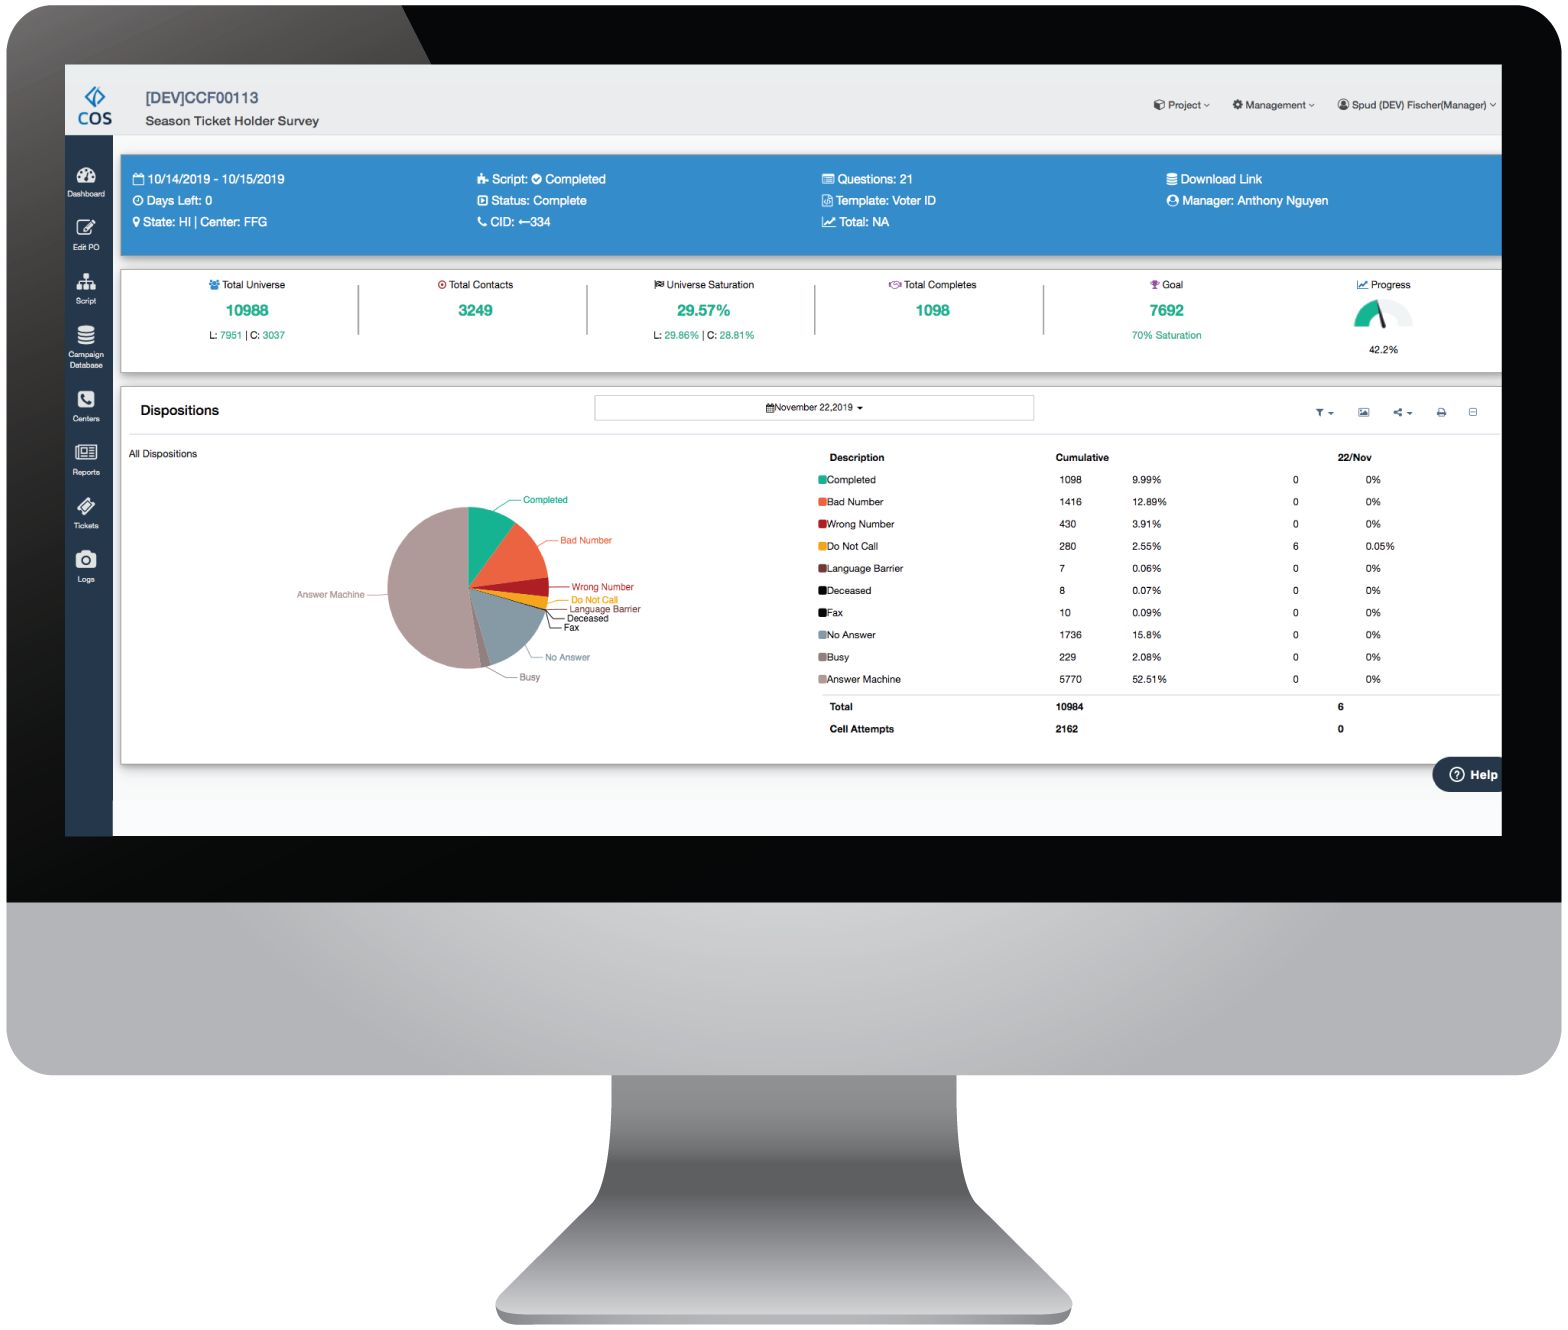 The COS Dashboard